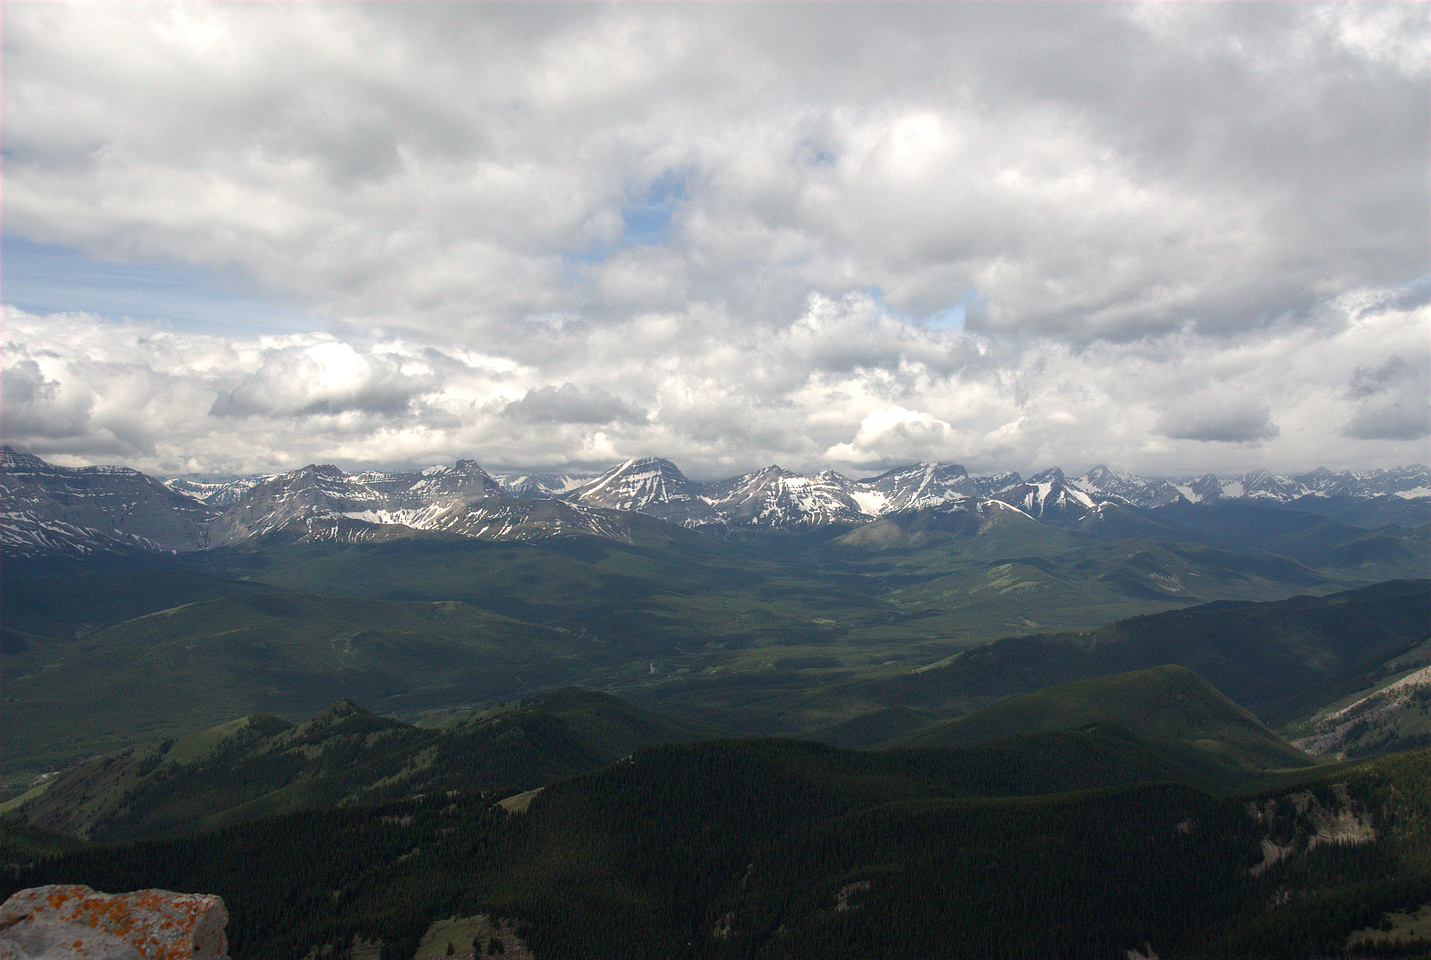 Views towards the High Rock Range.